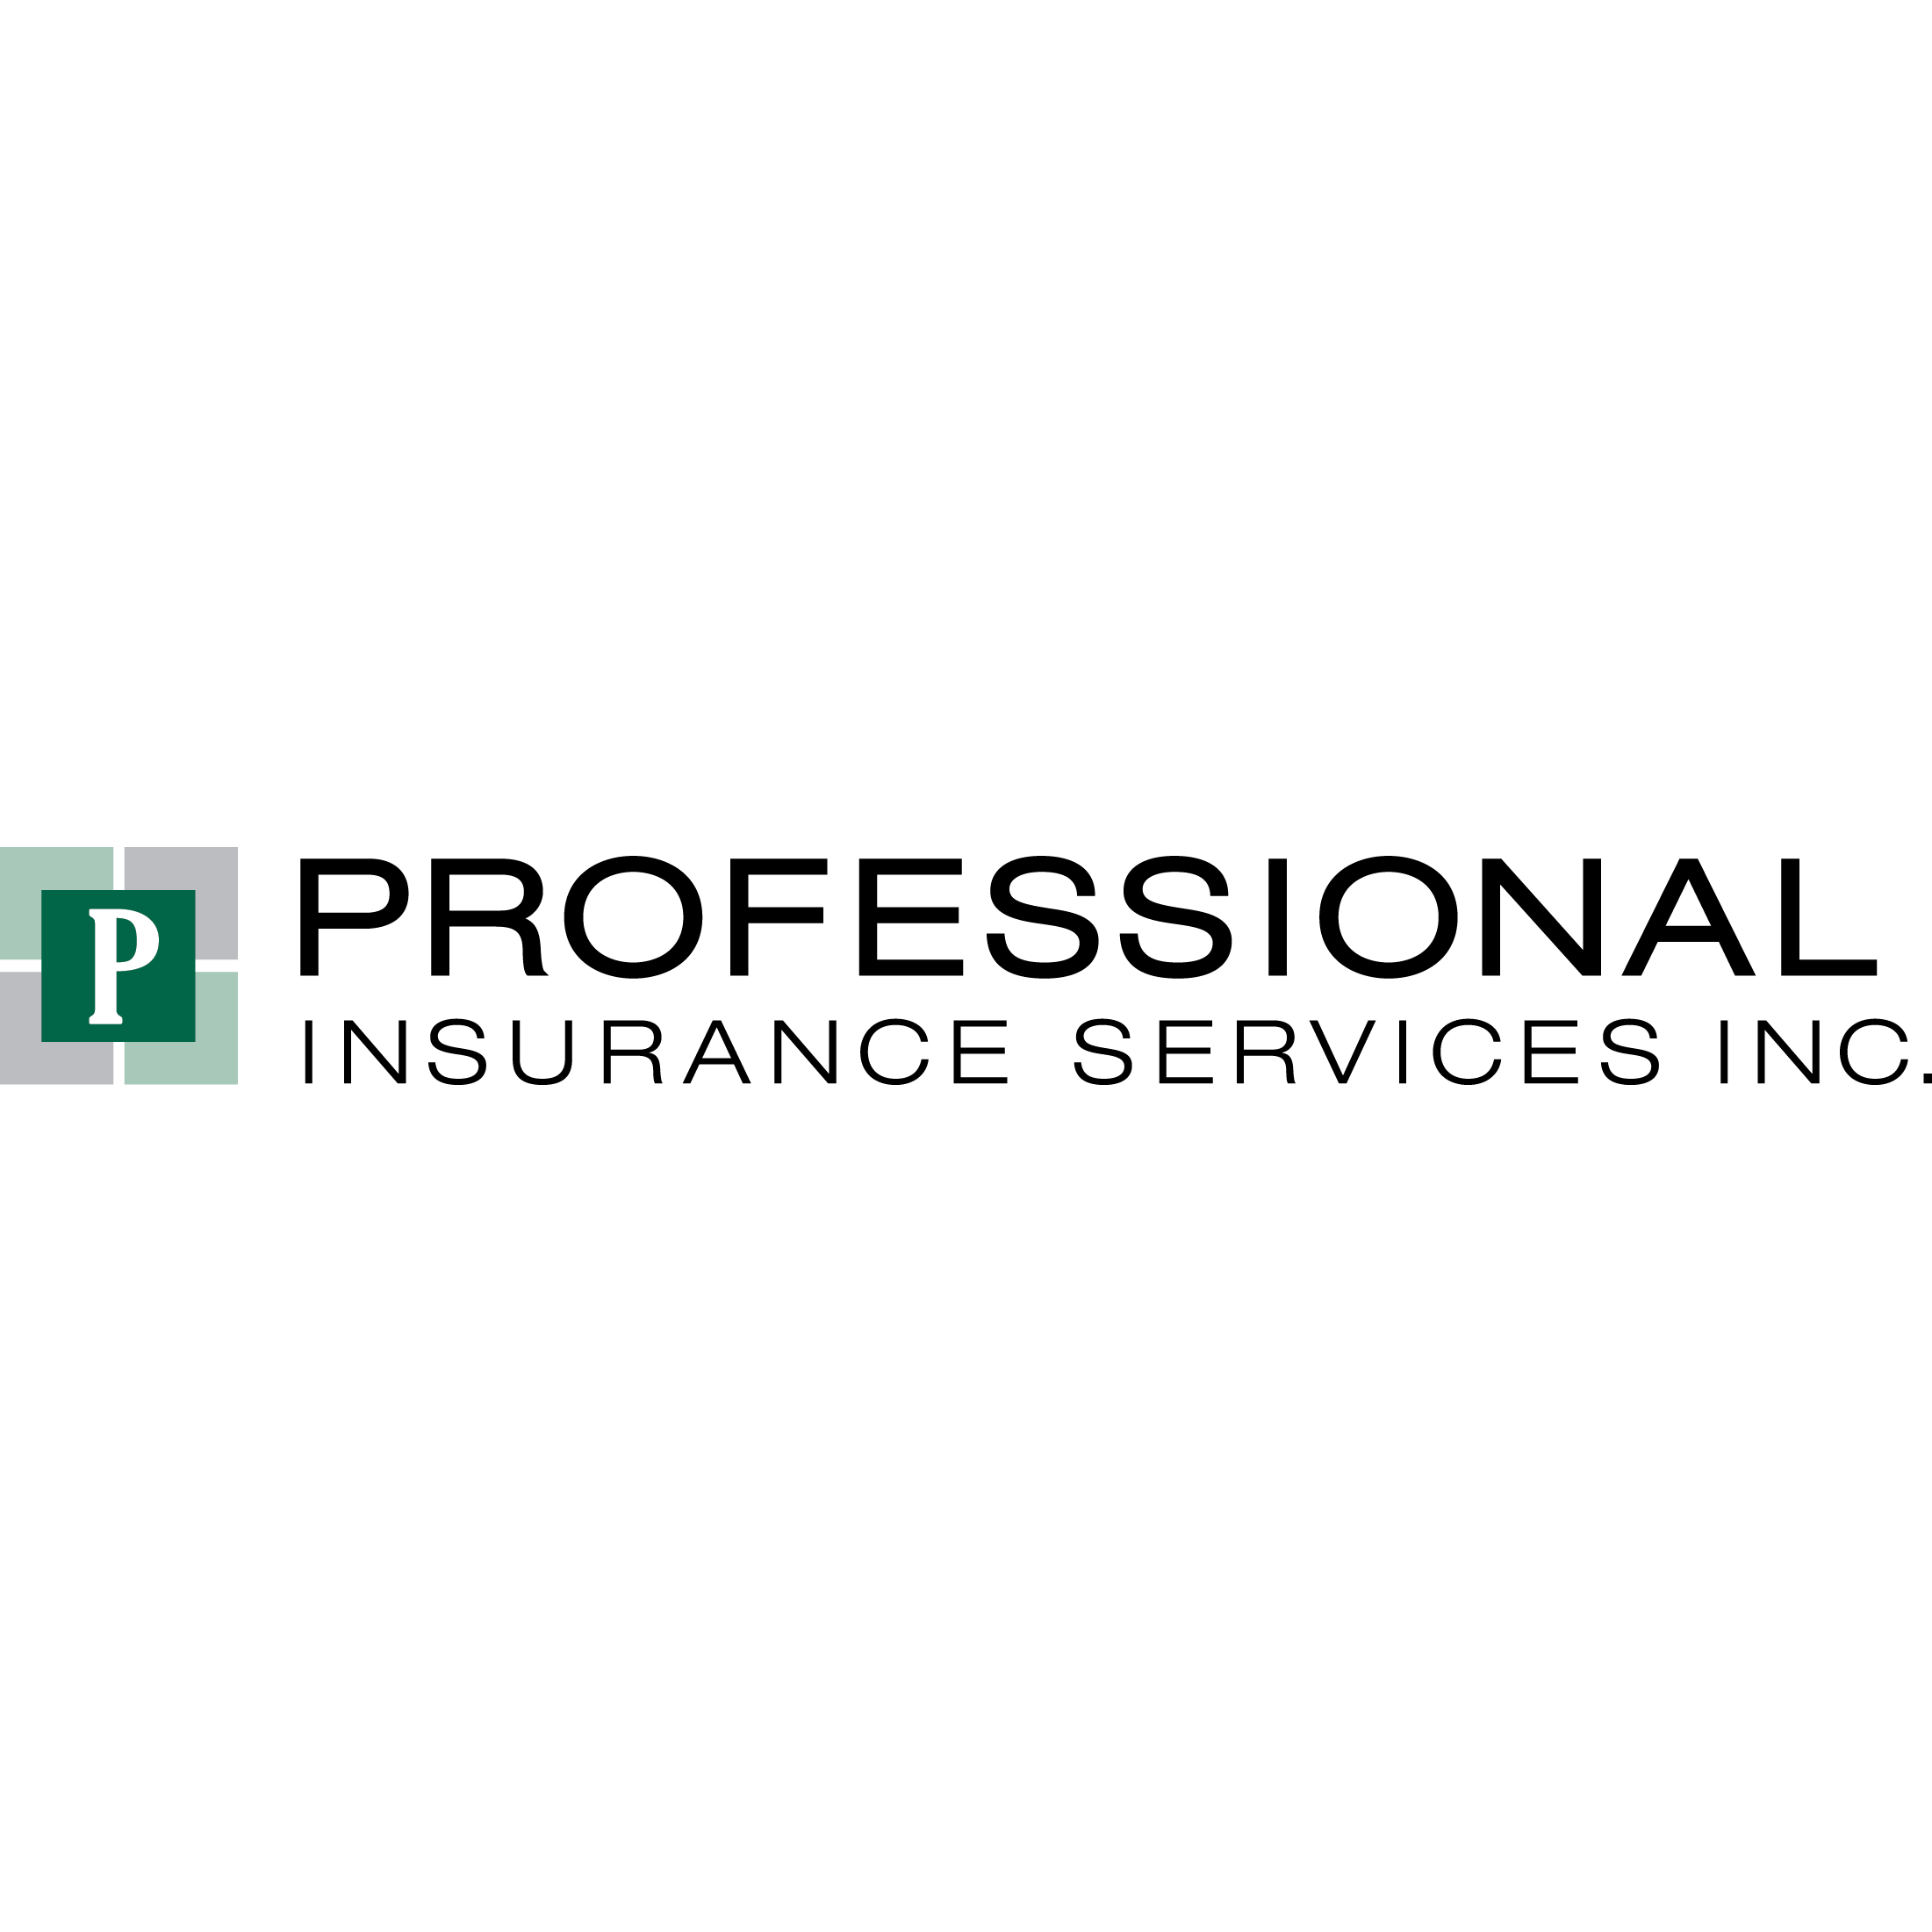 Professional Insurance Services - Bismarck, ND - Insurance Agents